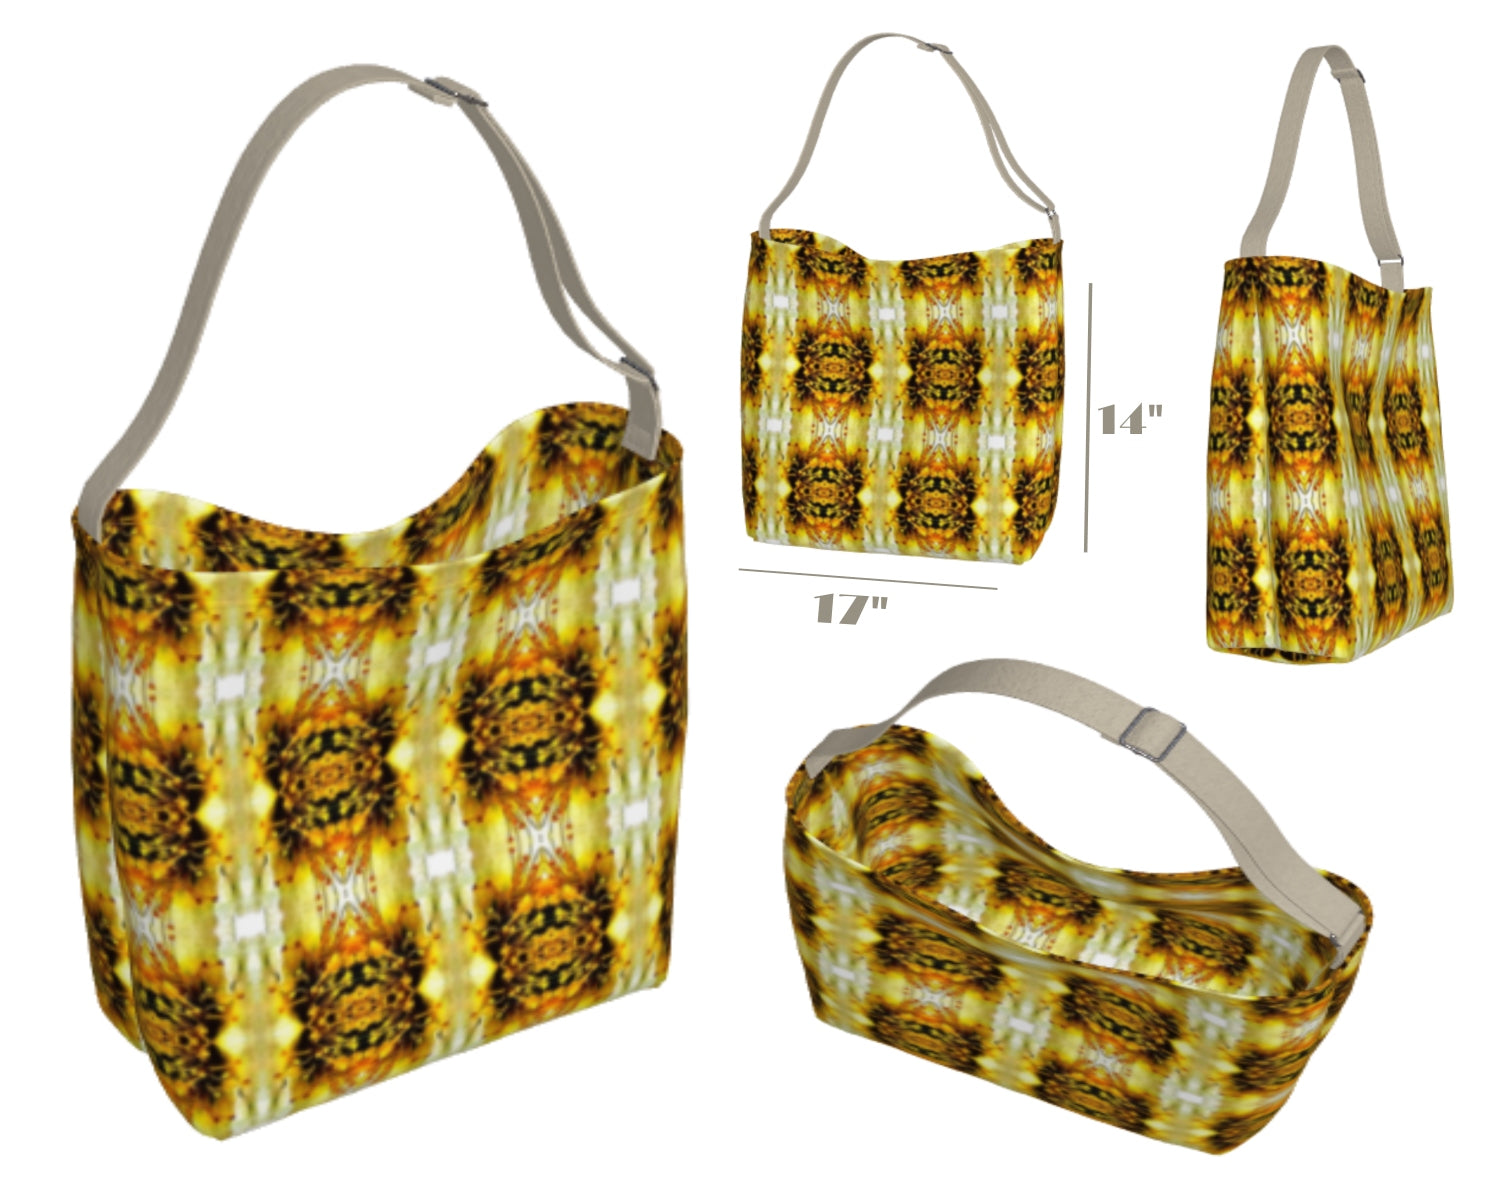 Washable Designer Print Bag in Fabric